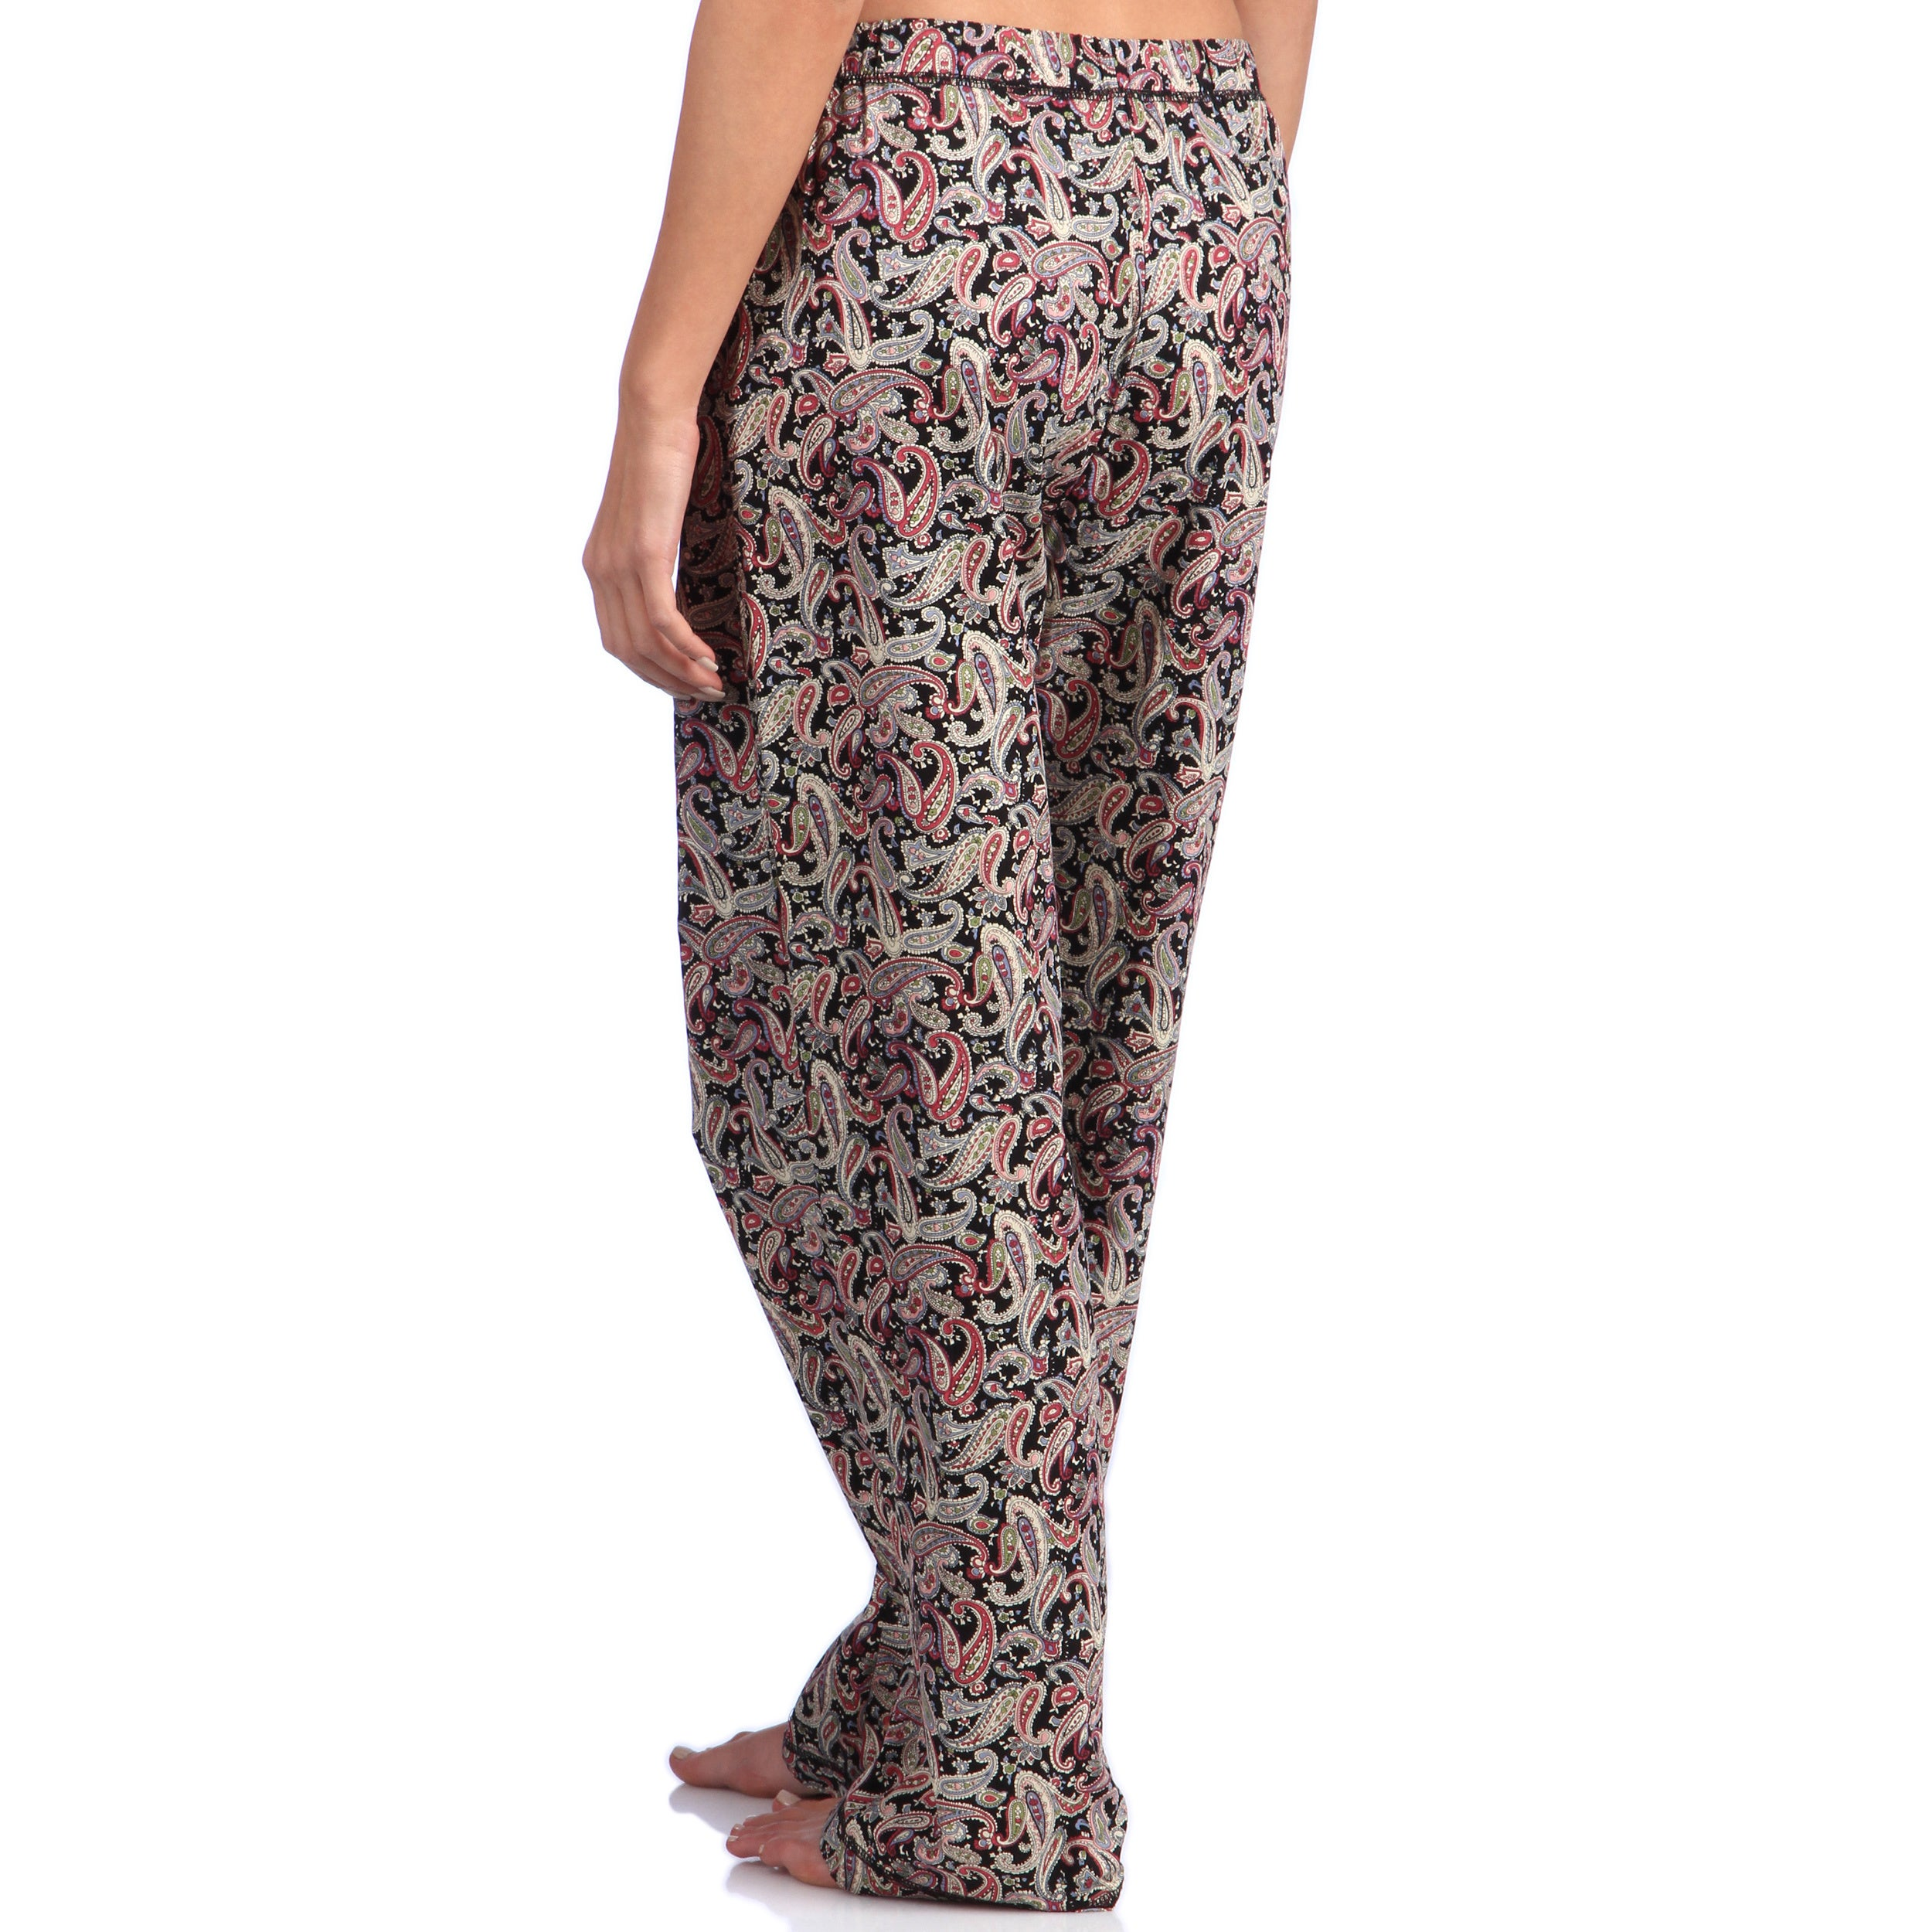 baea30ae2 Shop Leisureland Women's Paisley Print Cotton Poplin Black Pajama Pants -  Free Shipping On Orders Over $45 - Overstock - 8458530 - Medium